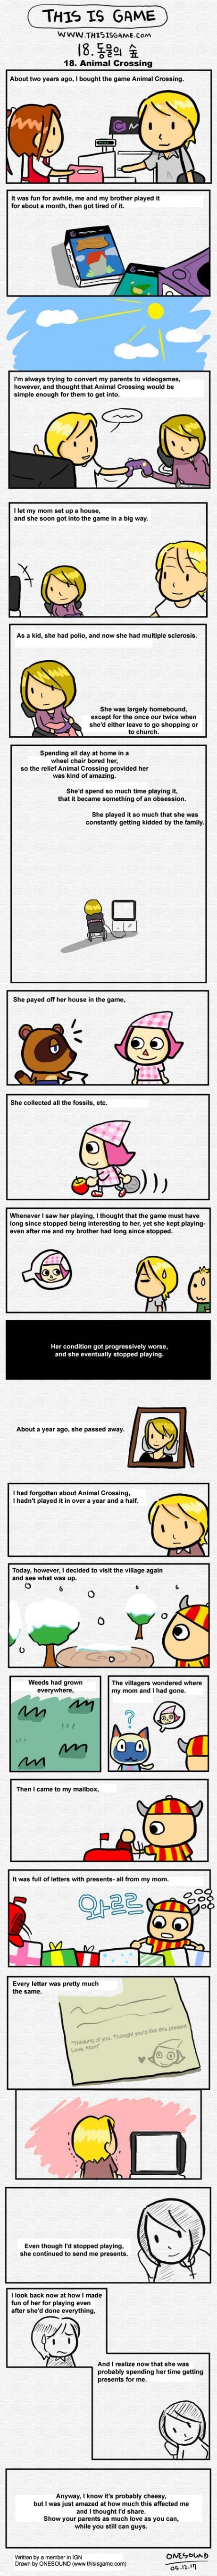 Sad moms animal crossing web comics - 8208876800